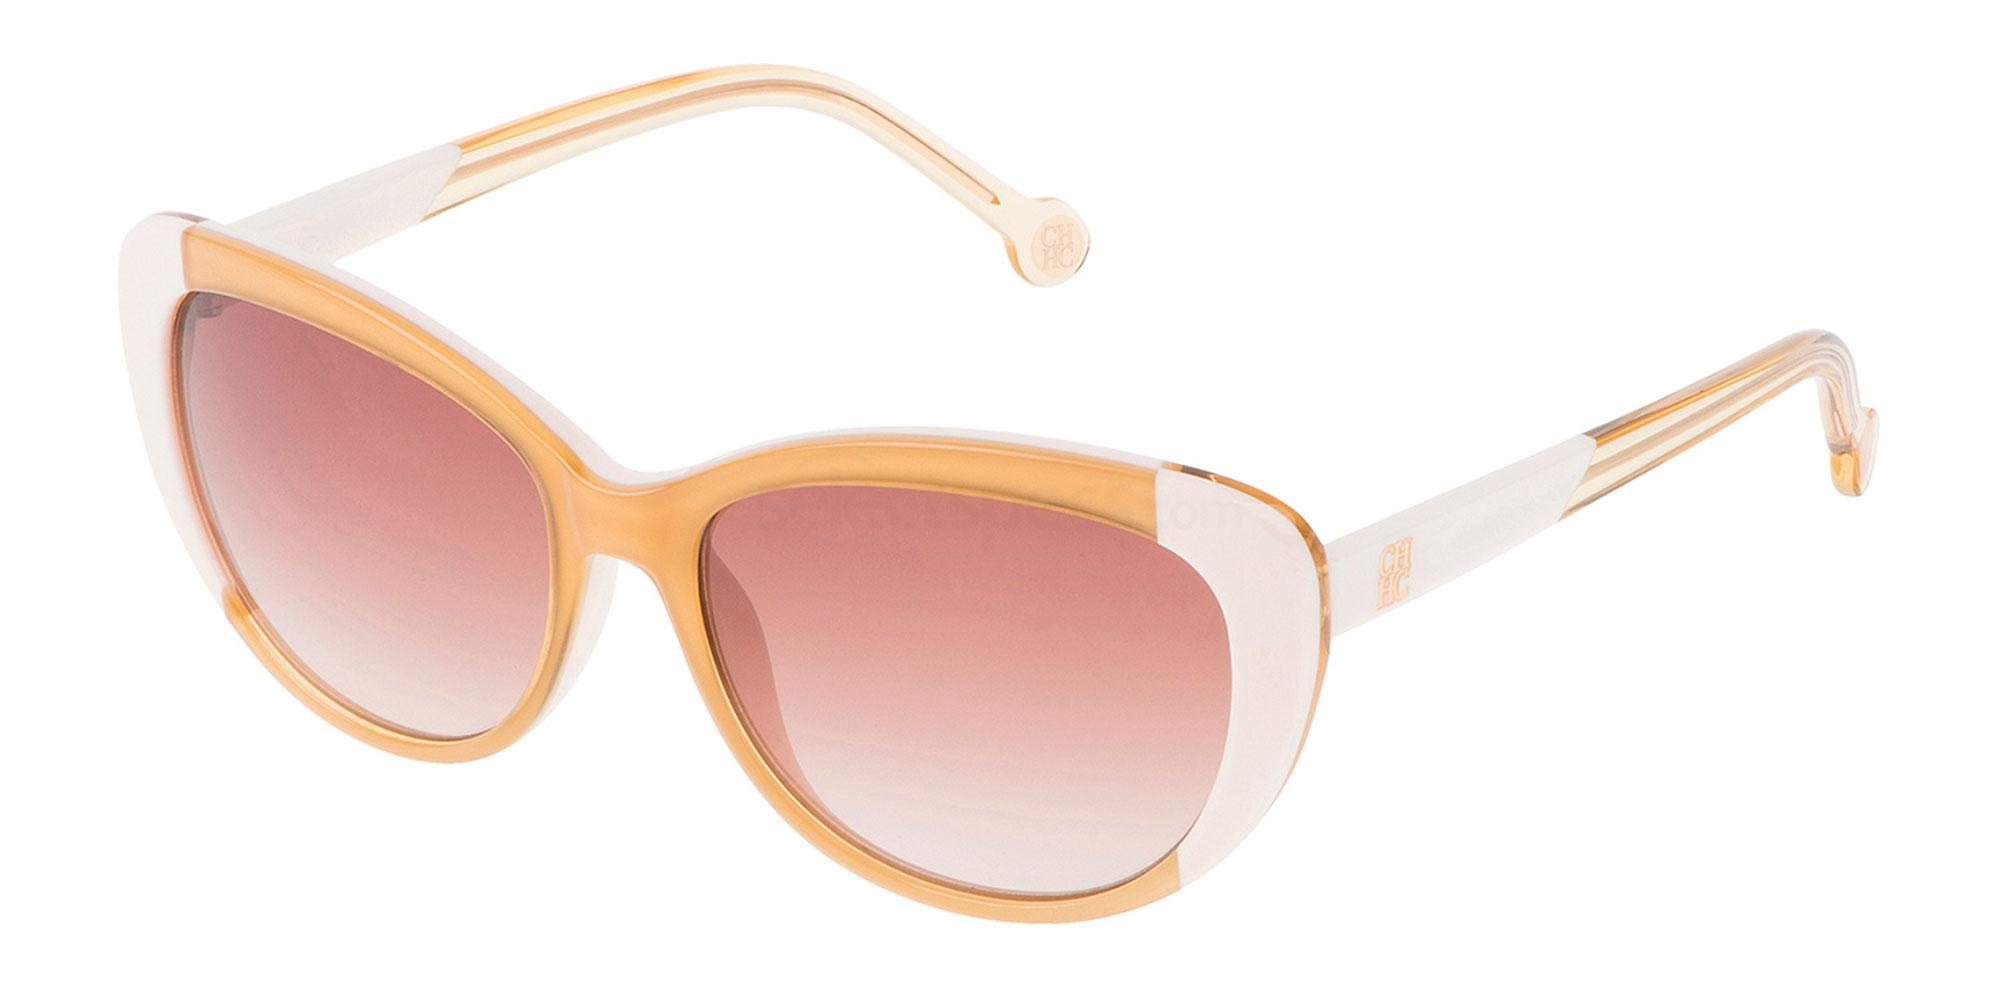 Herrera yellow frame sunglasses